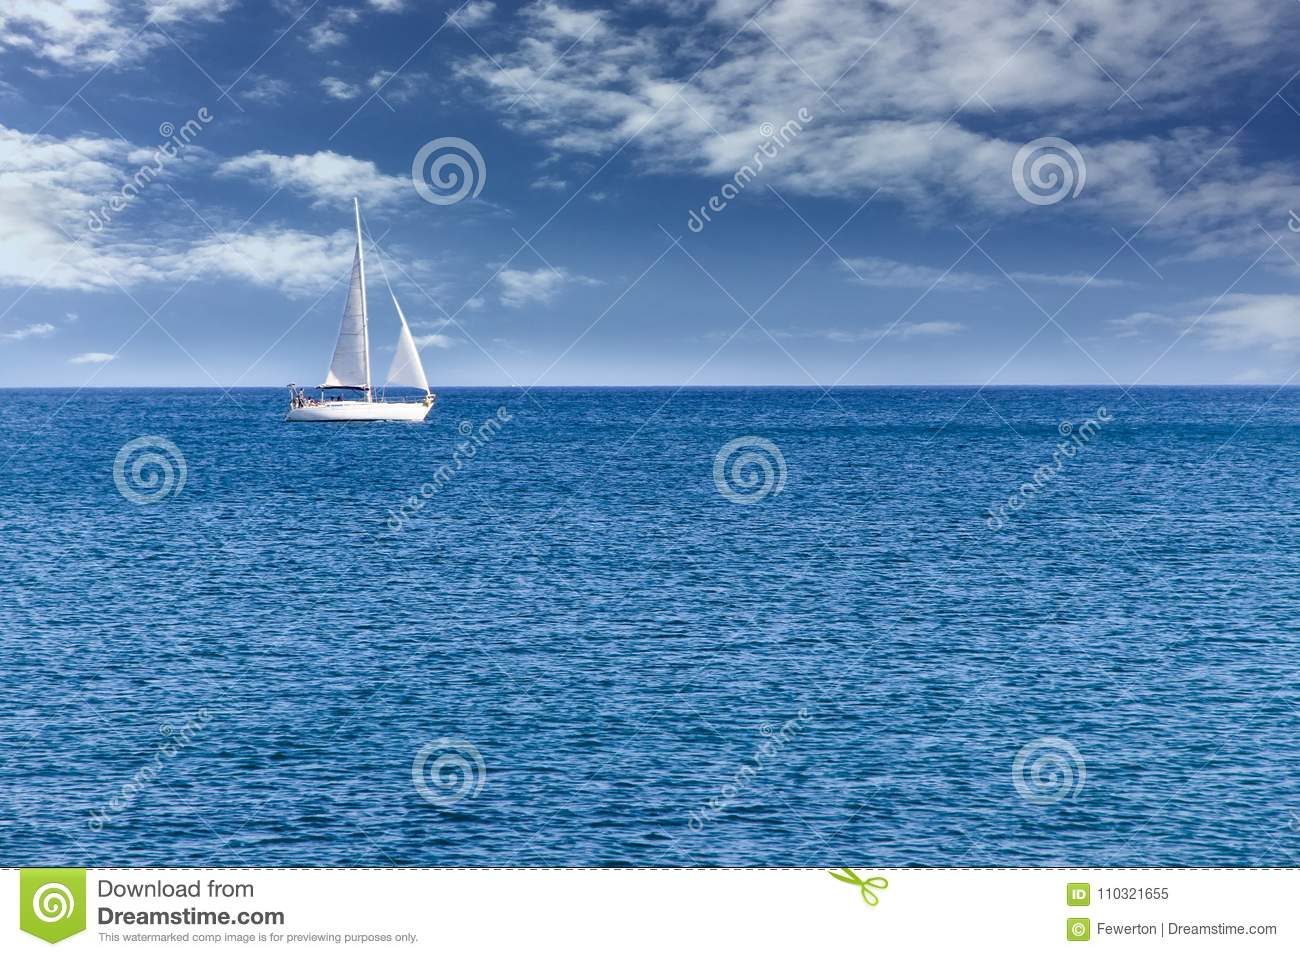 Yacht sailboat. Yacht sailboat sailing alone on calm blue sea waters on a beautiful sunny day with blue sky and white clouds